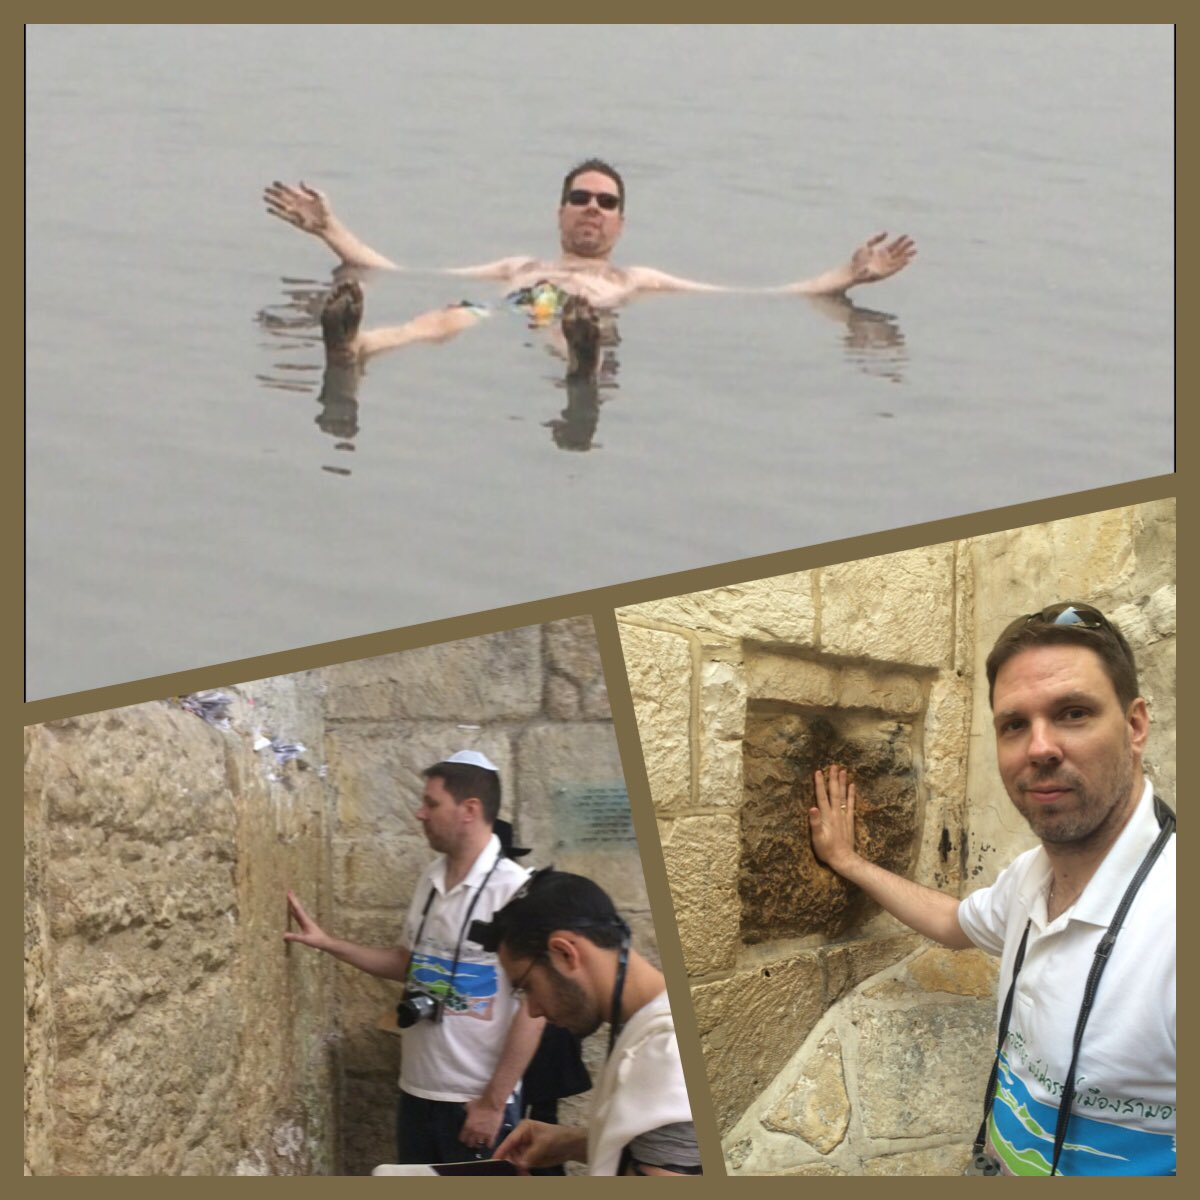 Enjoyed Israel got to  walk in Jesus's foot steps in Jerusalem, float in the Dead Sea and saw the Whaling Wall. https://t.co/u9d3Of2NHT